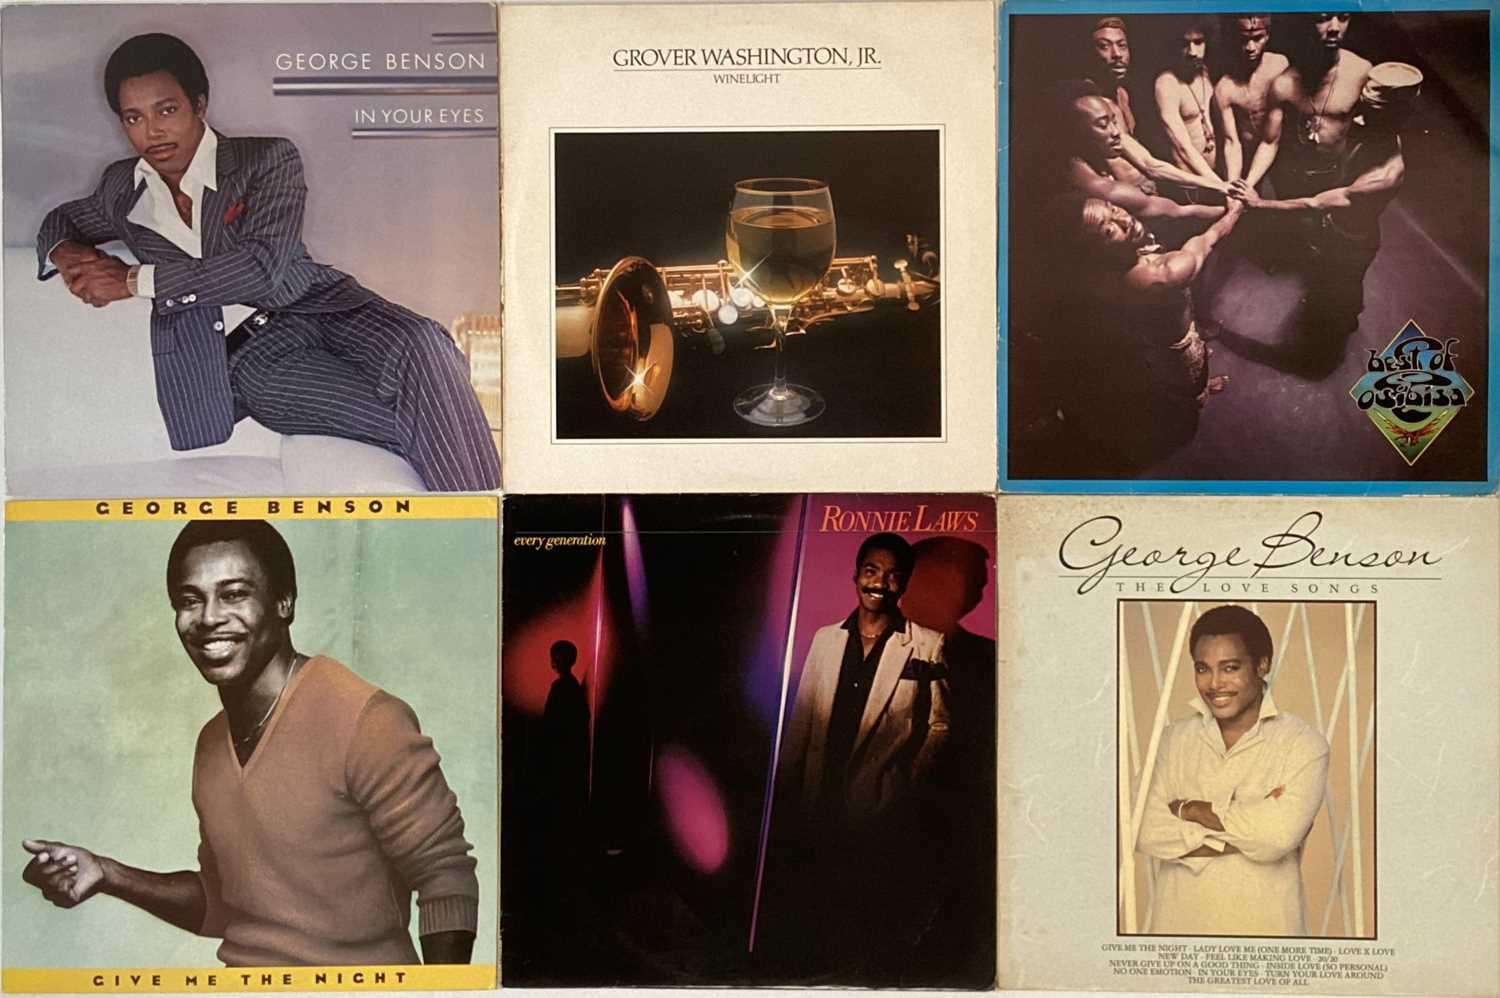 JAZZ ROCK/FUSION - LPs - Image 3 of 5